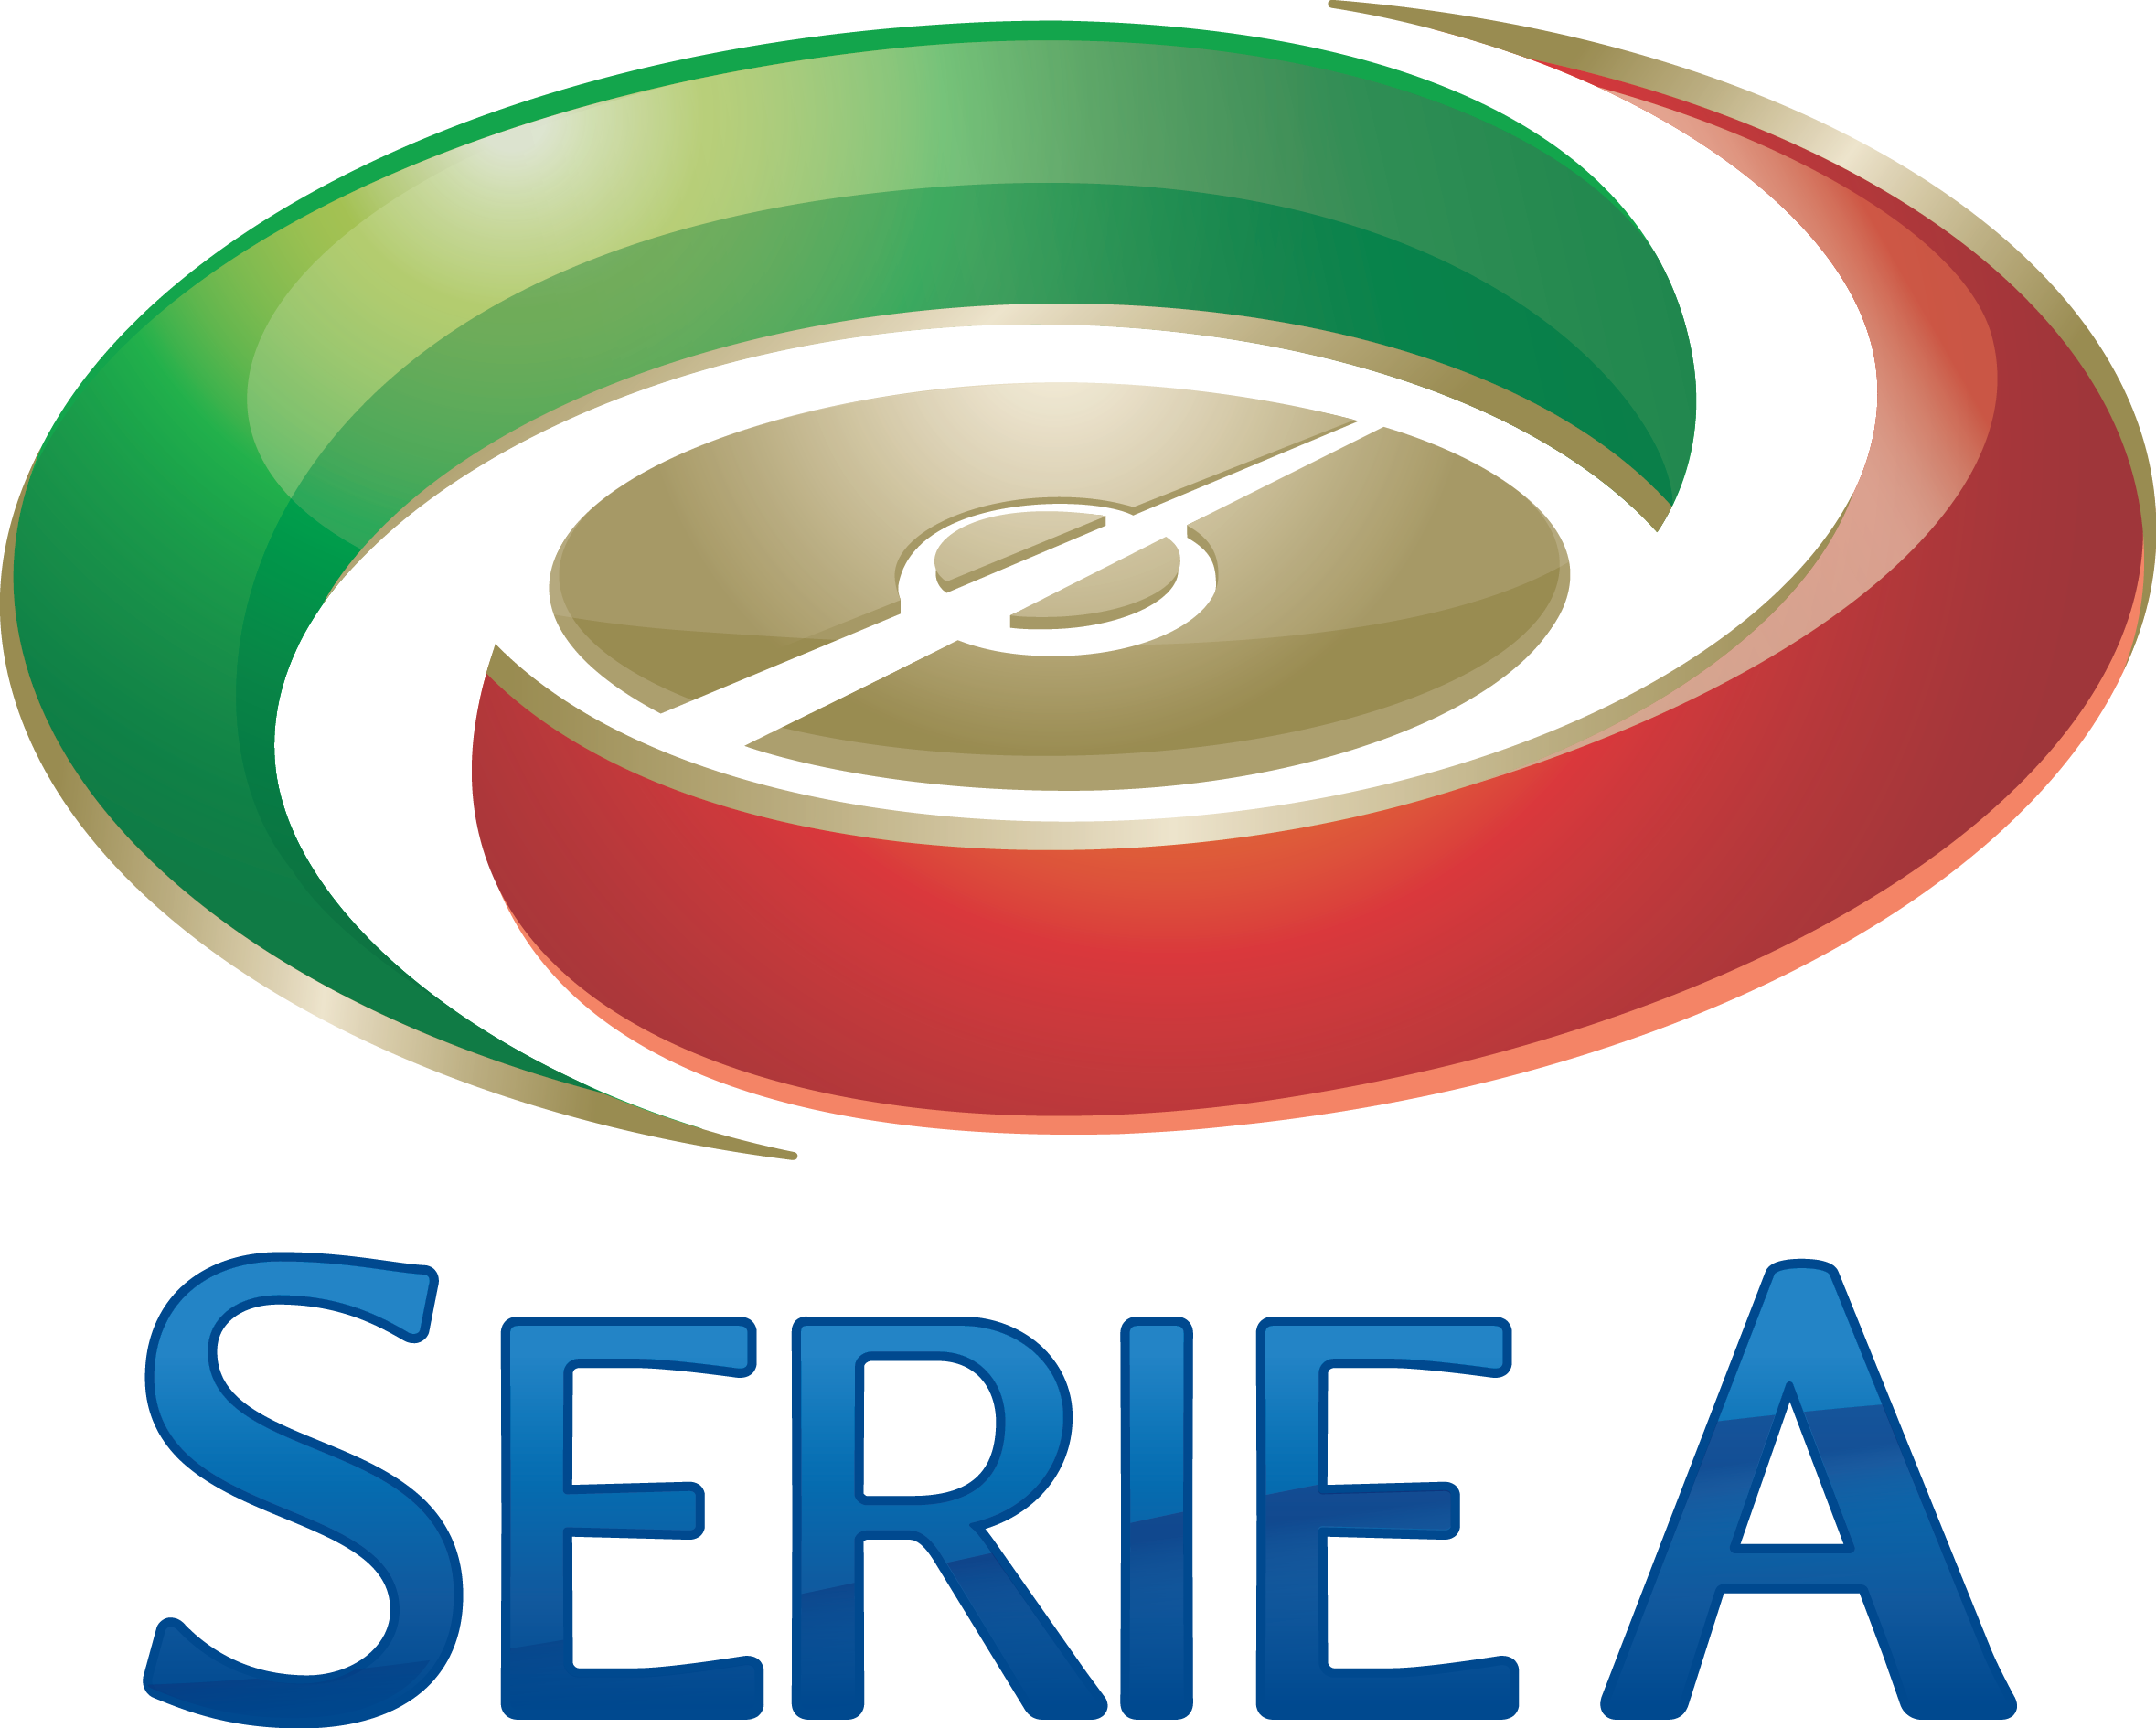 Chievo Verona vs Udinese 1-1 All goals and highlights 19/04/2015